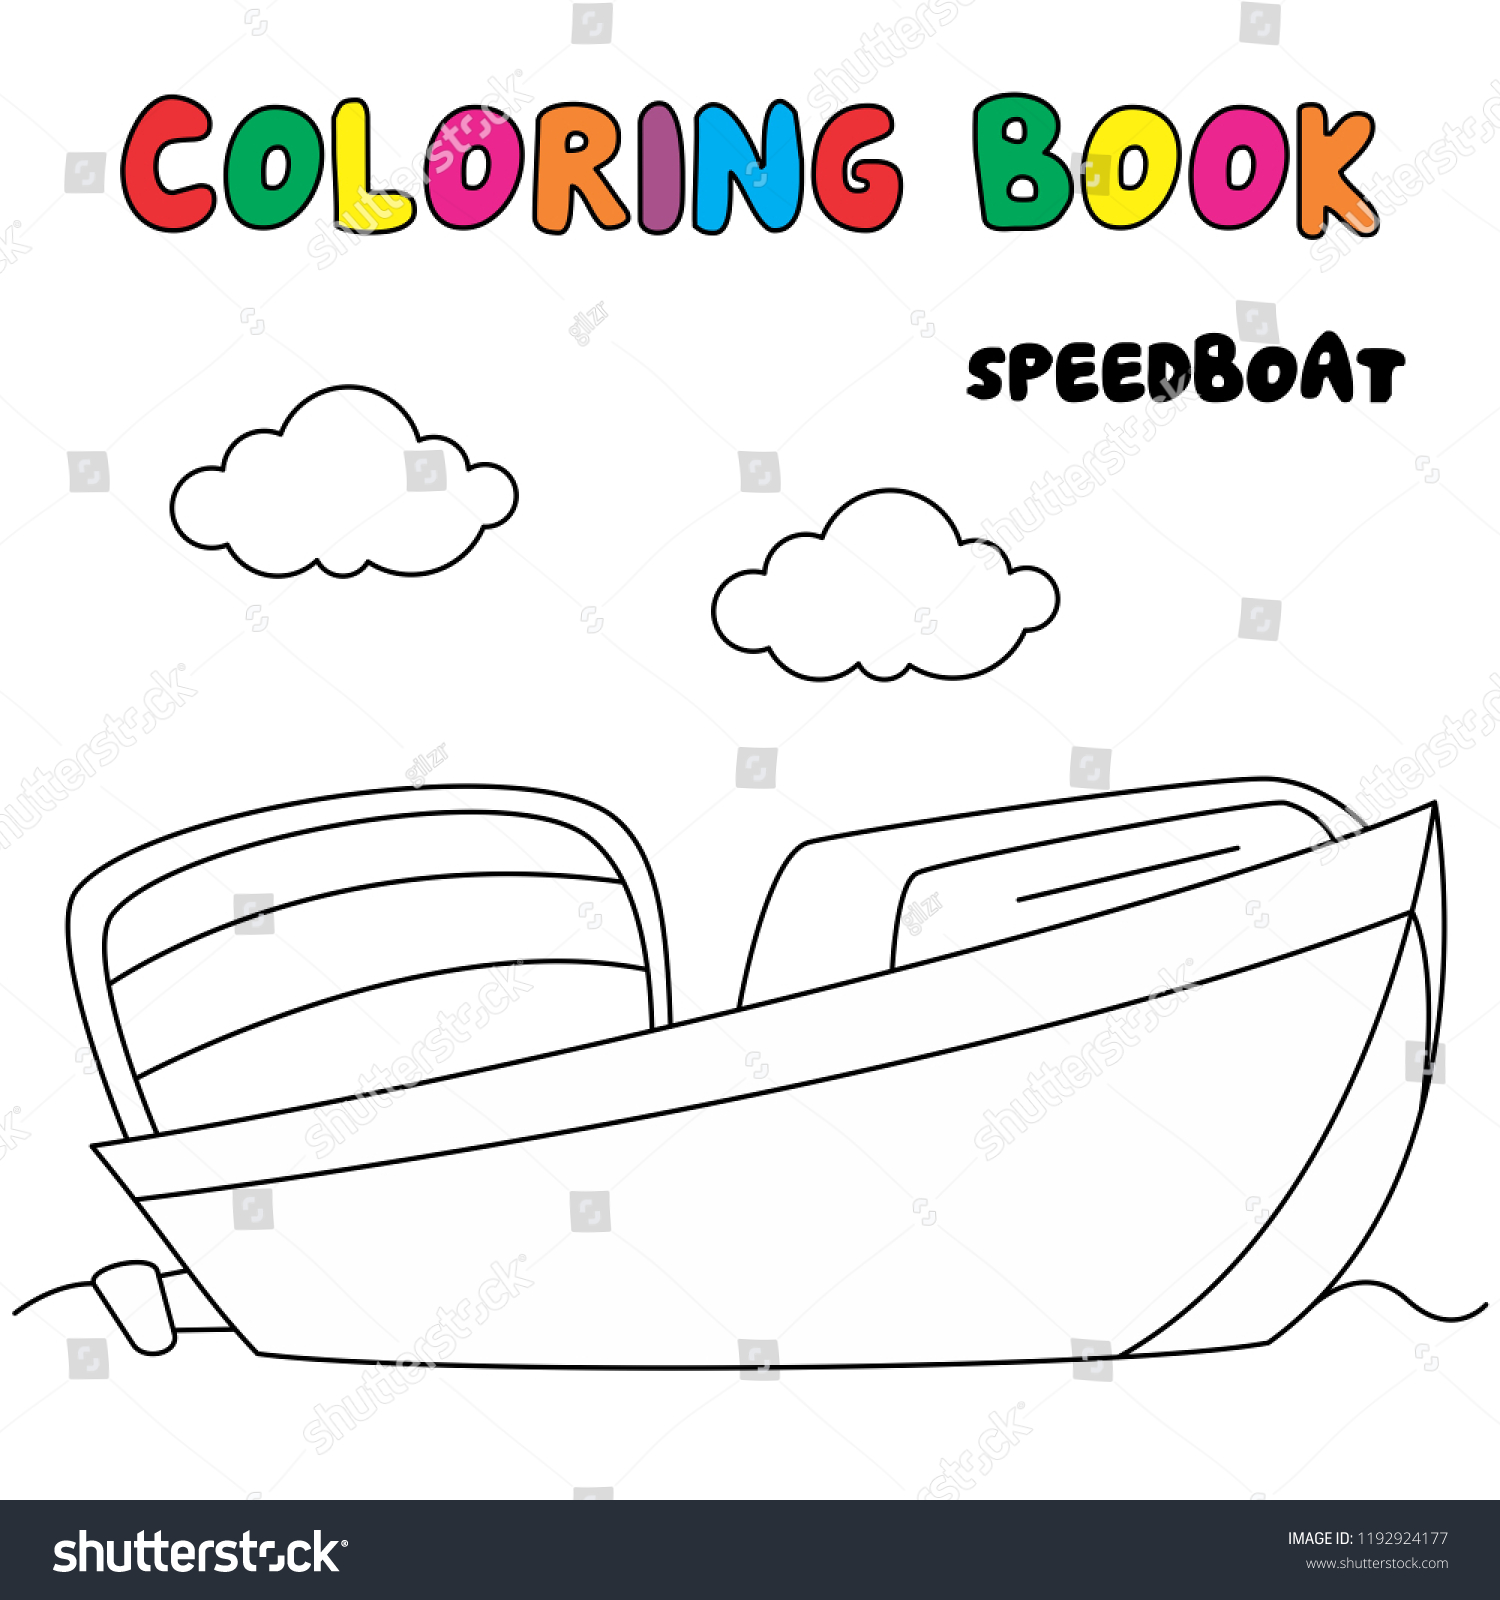 Speedboat Coloring Page Transportation Coloring Book Stock Vector